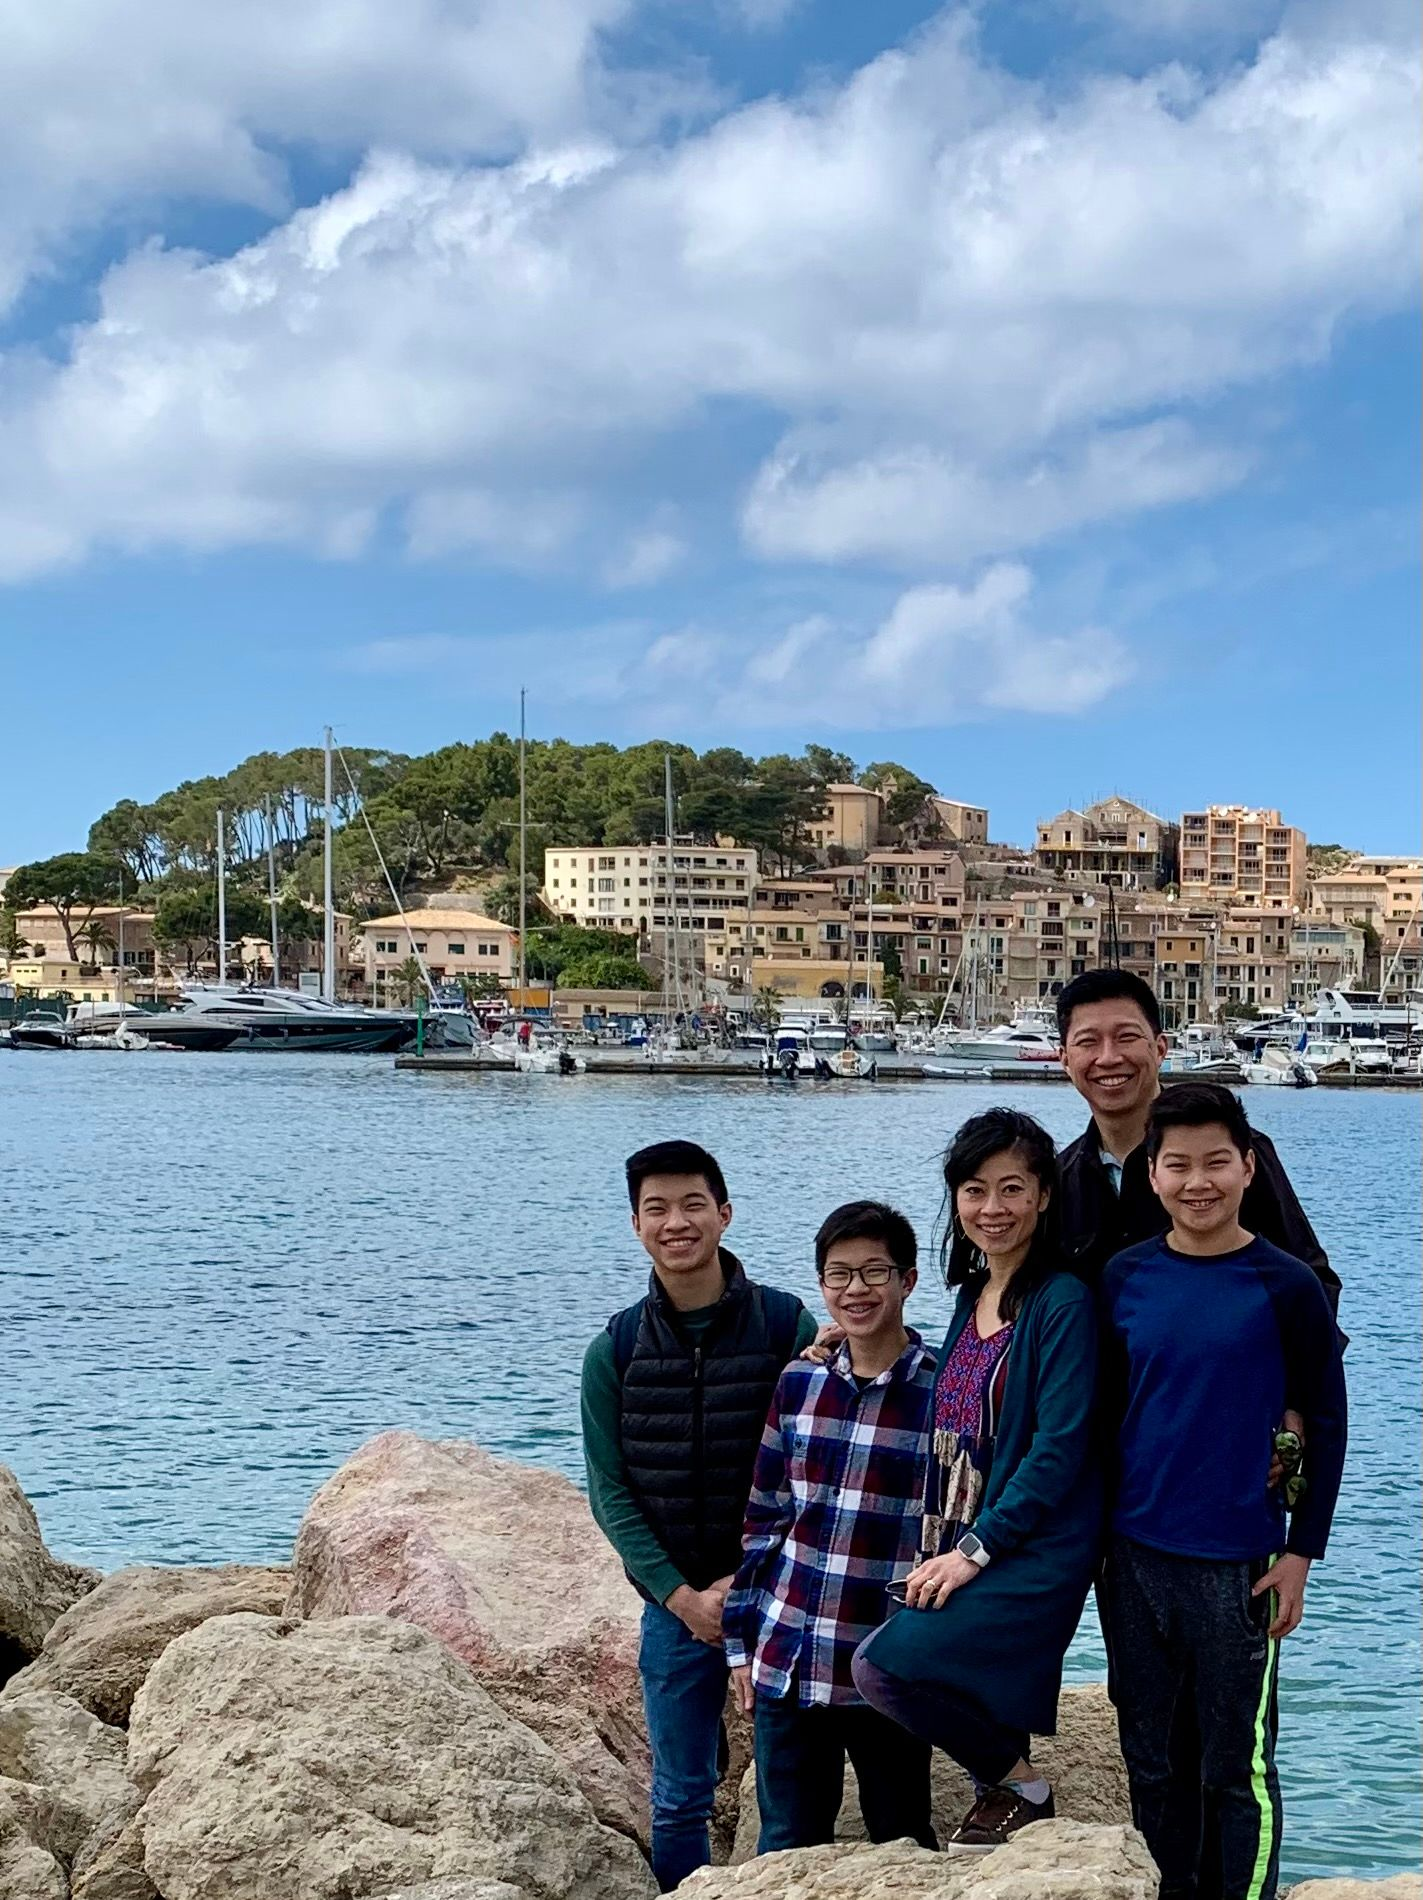 Area Director with her family on vacation.